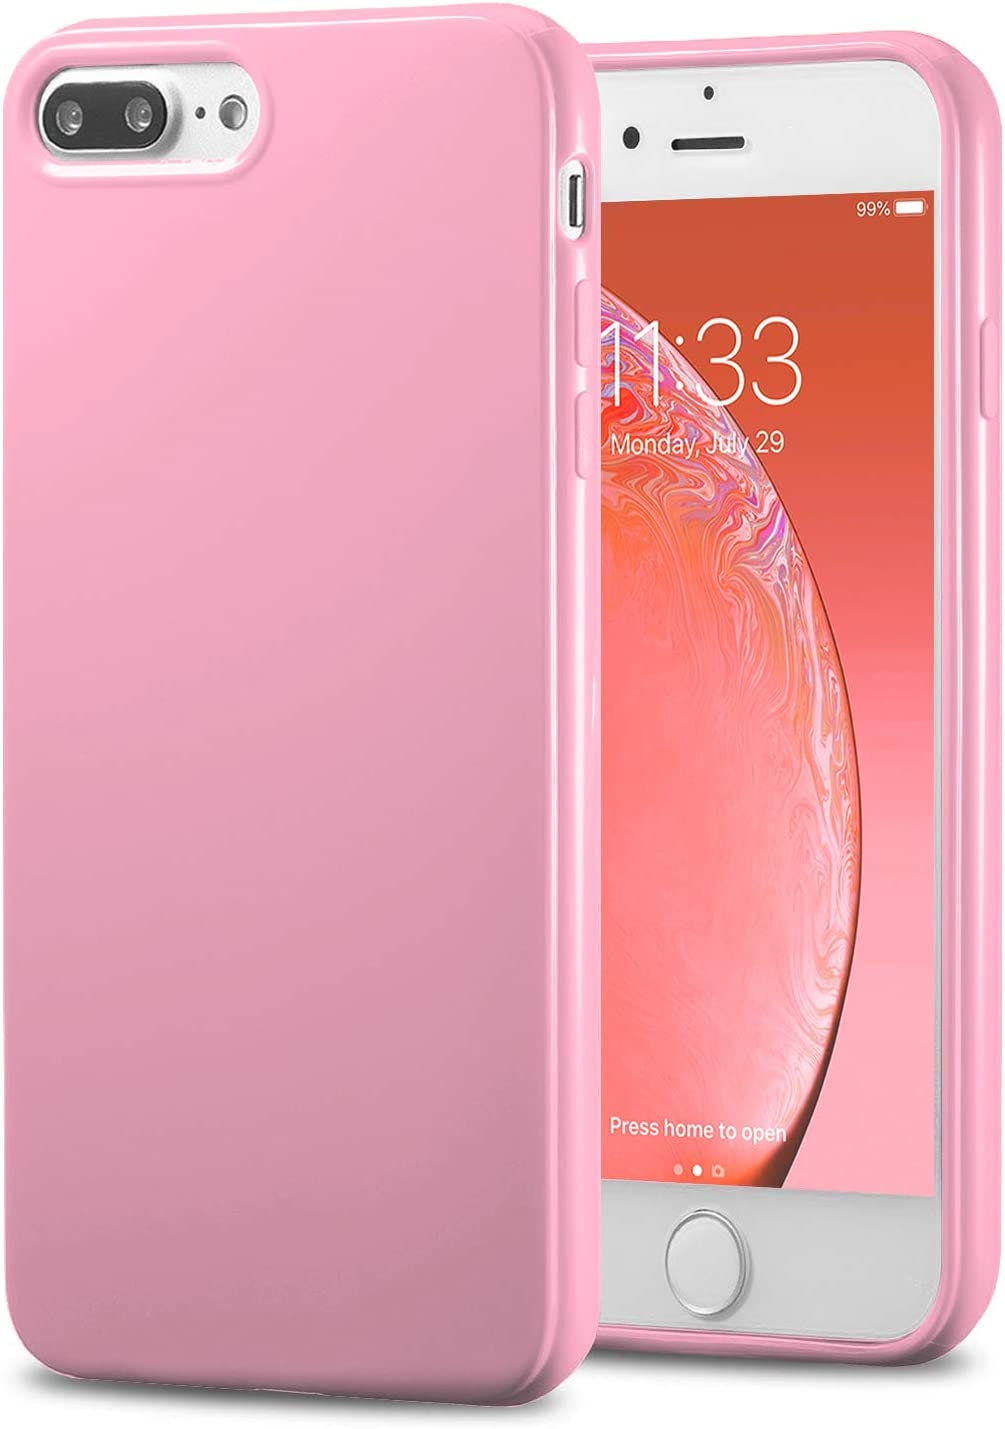 TENOC Phone Case Compatible for Apple iPhone 8 Plus & iPhone 7 Plus 5.5 Inch, Slim Fit Cases Soft TPU Bumper Protective Cover, Glossy Pink